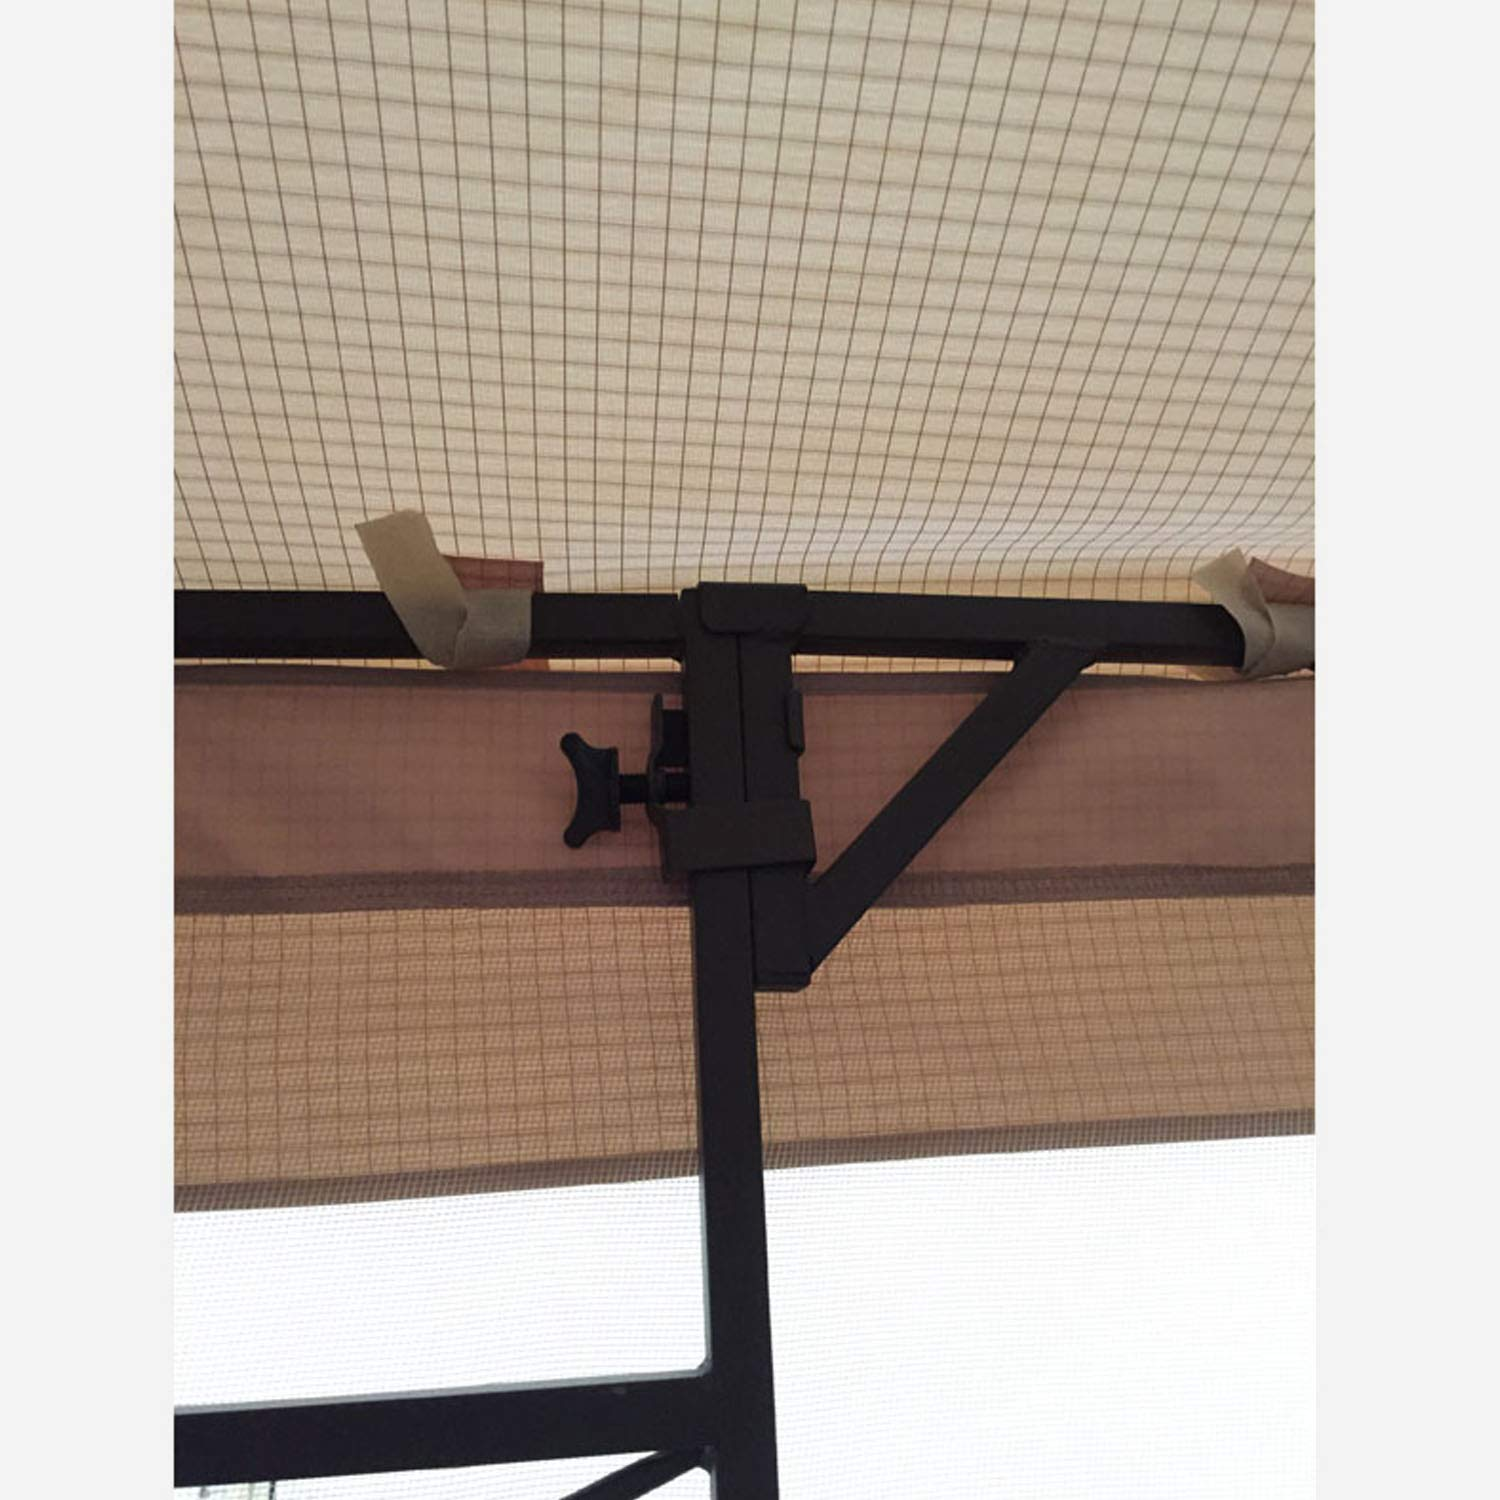 Garden Winds Parkesburg Gazebo Replacement Canopy Top Cover - RipLock 350